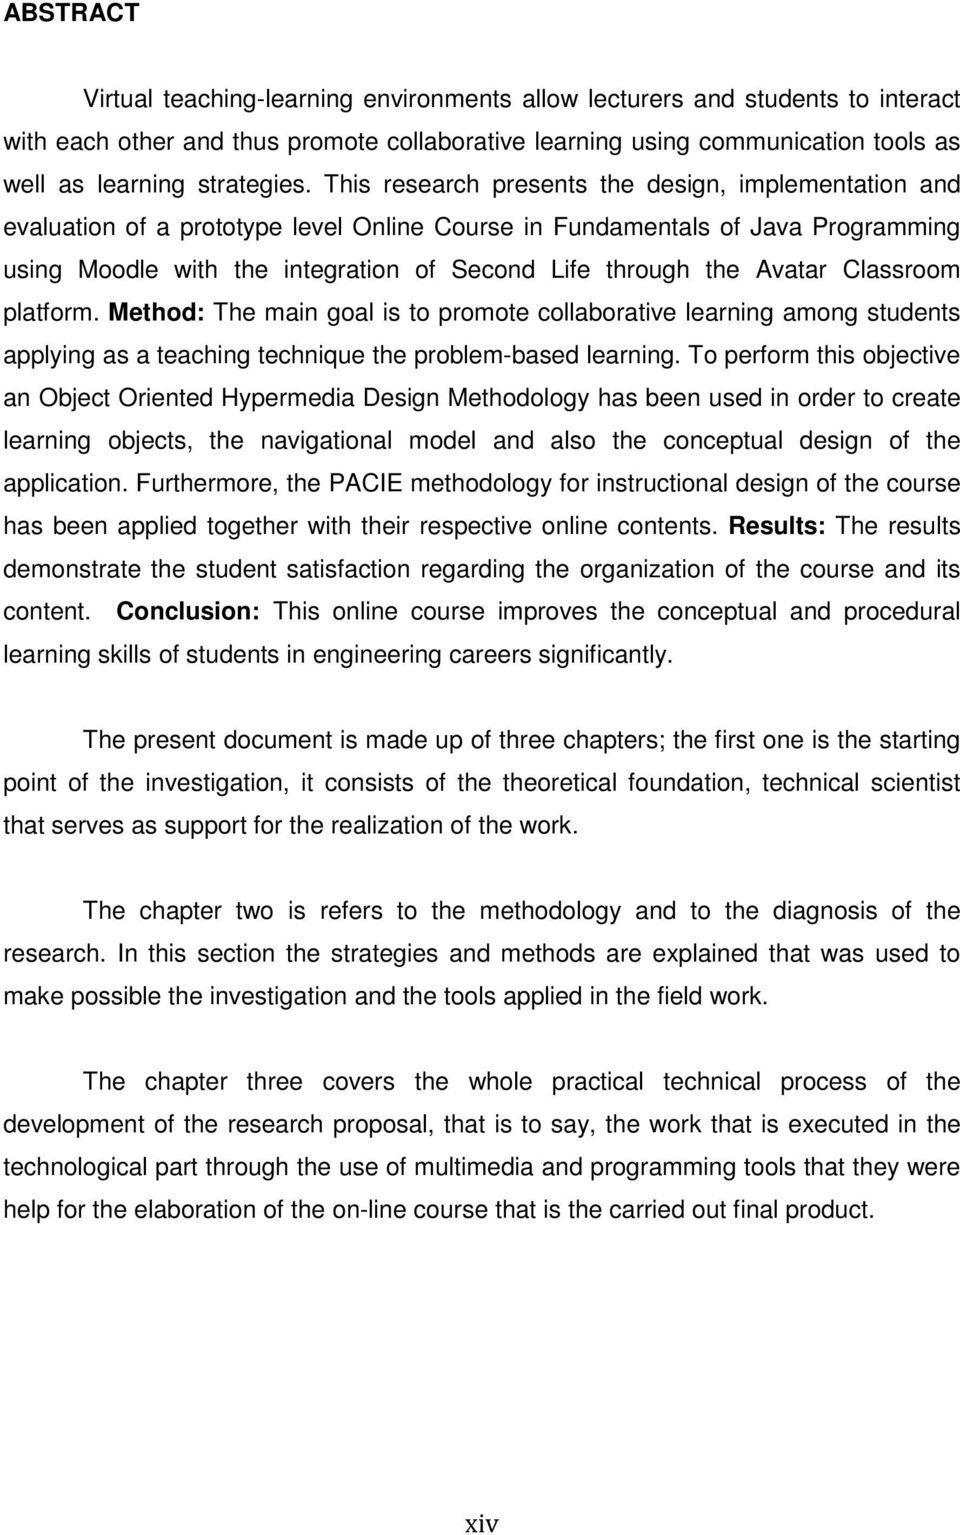 This research presents the design, implementation and evaluation of a prototype level Online Course in Fundamentals of Java Programming using Moodle with the integration of Second Life through the